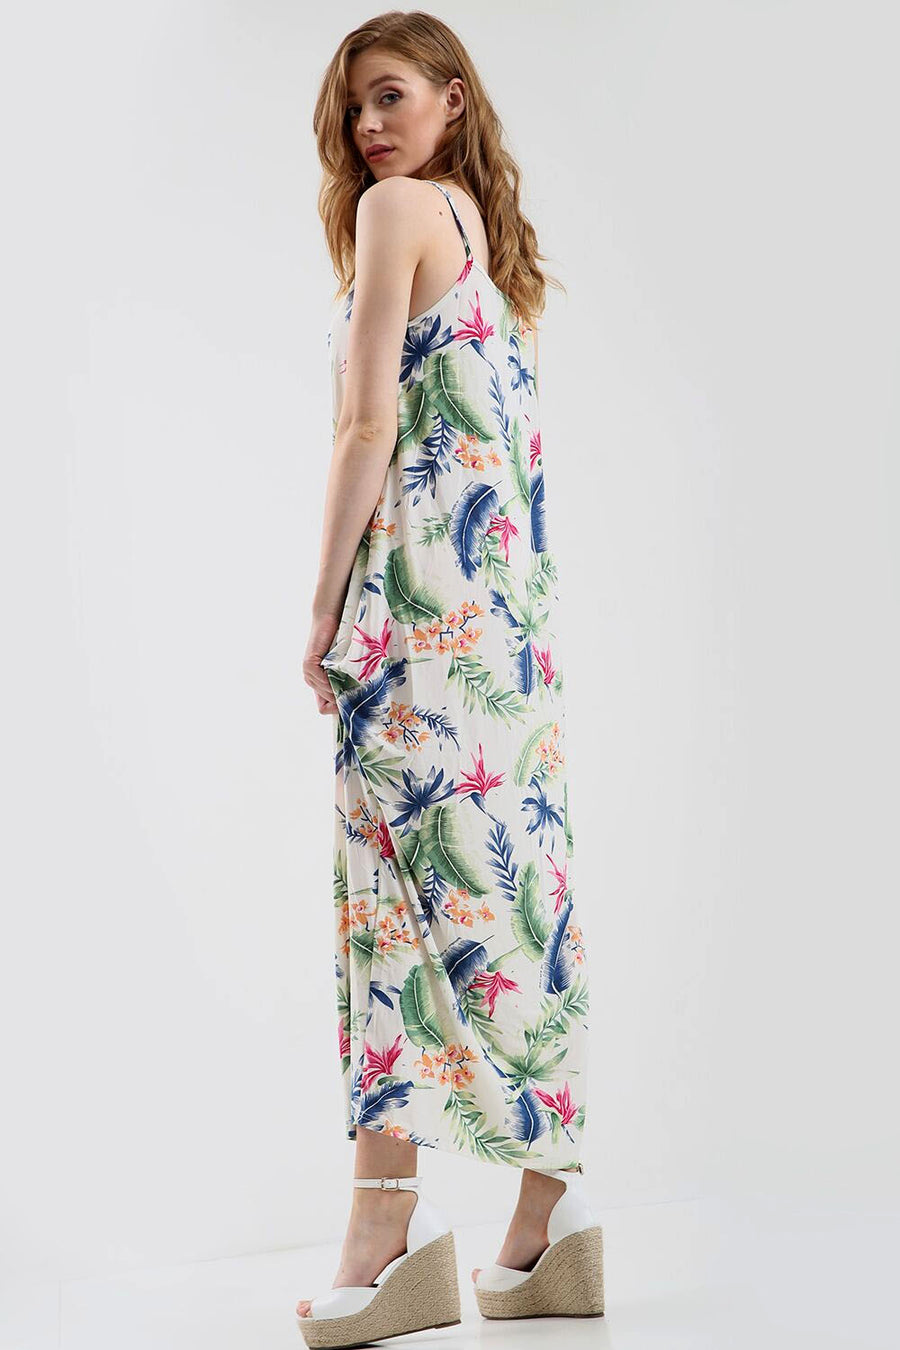 Cami Floral Print Loose Fit Maxi Dress - bejealous-com